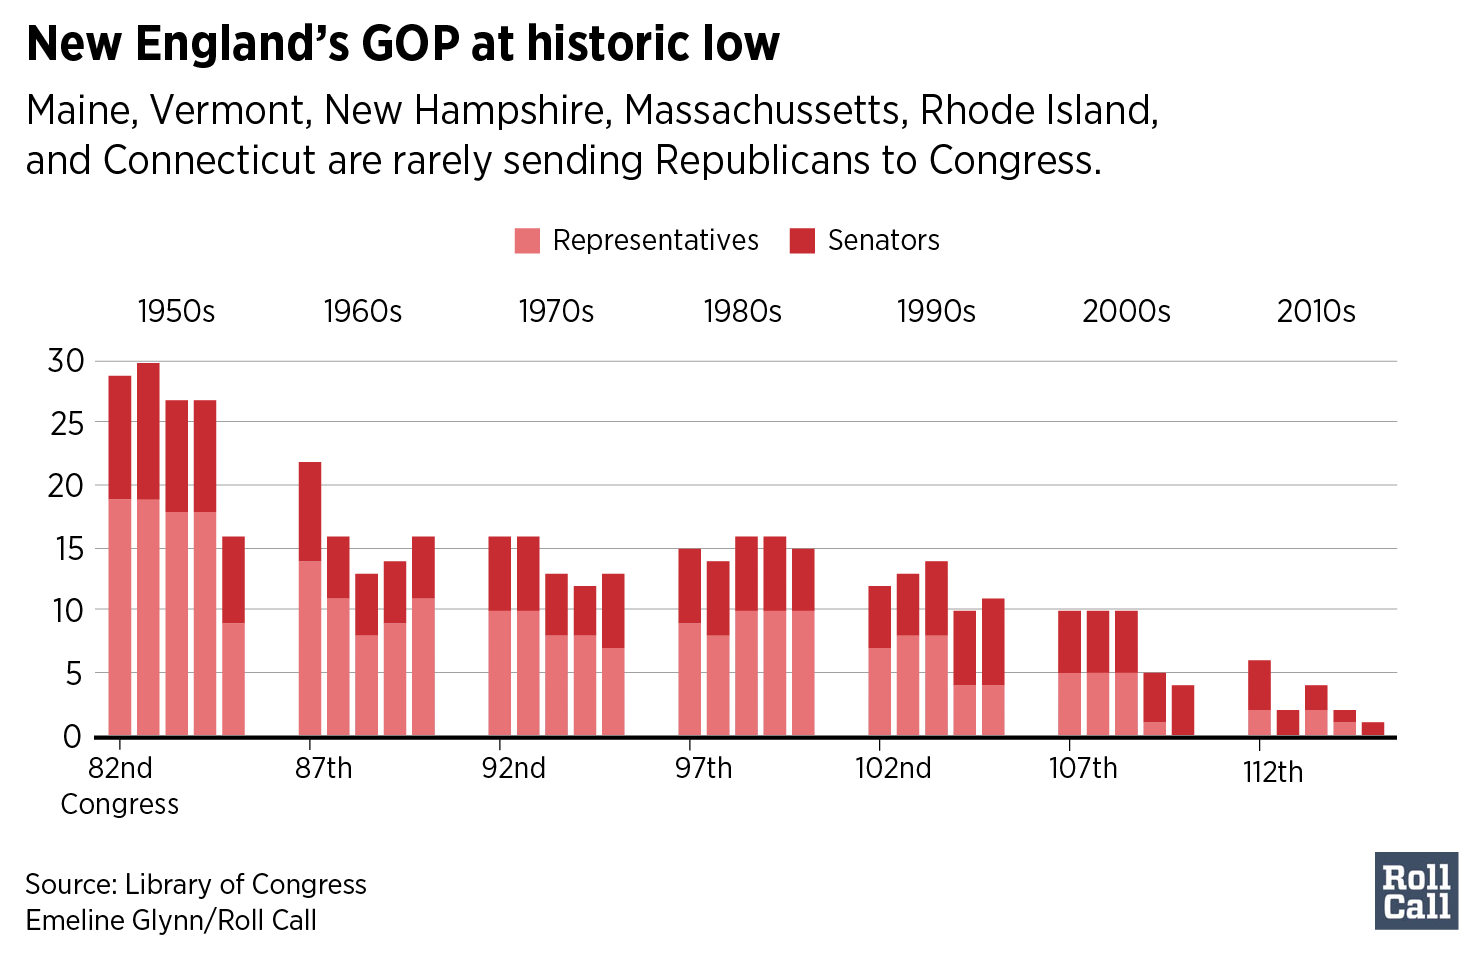 New England's GOP at historic low